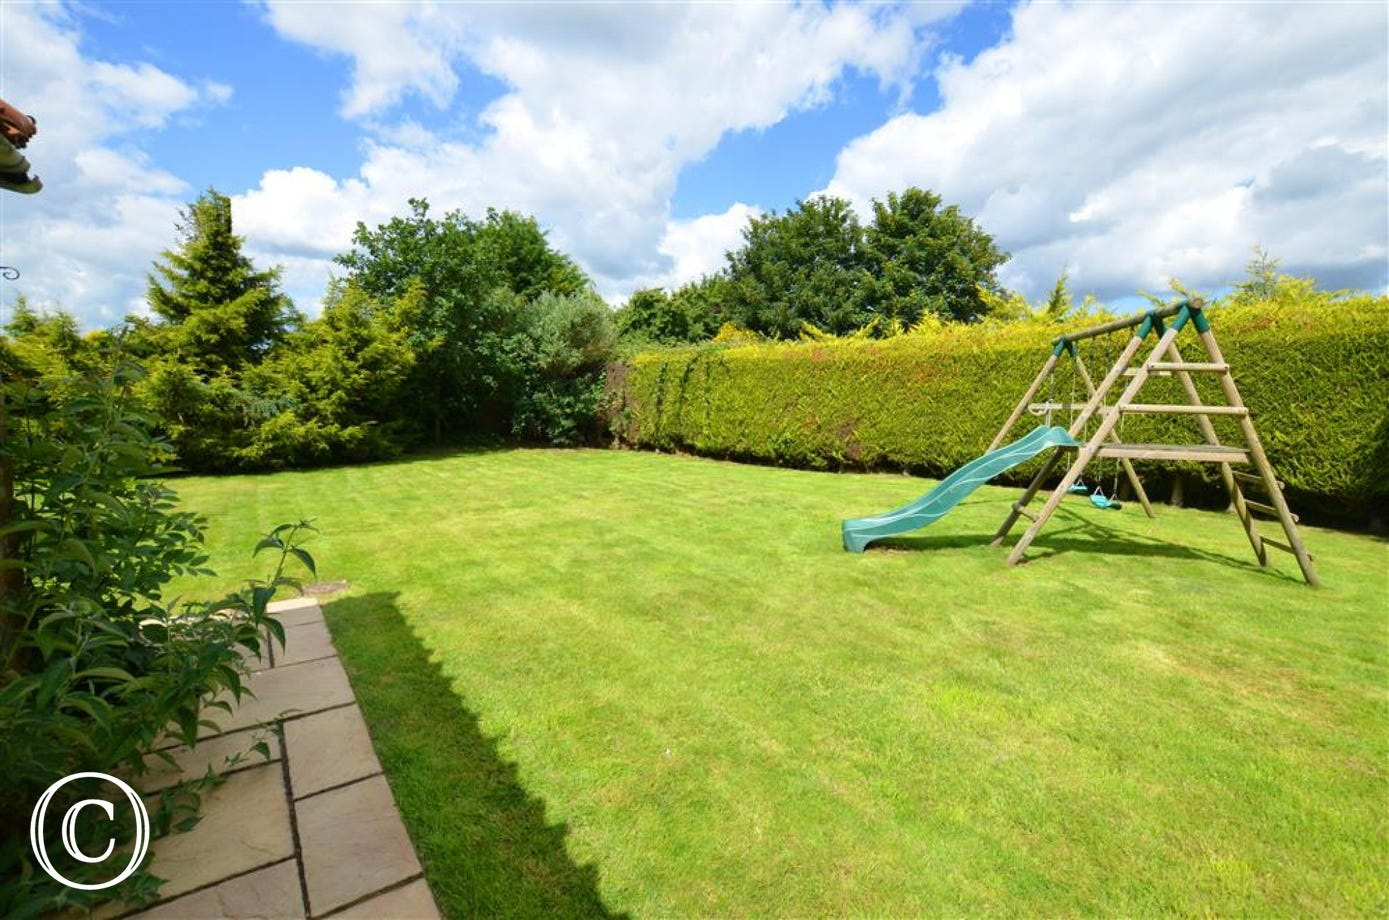 Large lawned area with climbing frame and slide